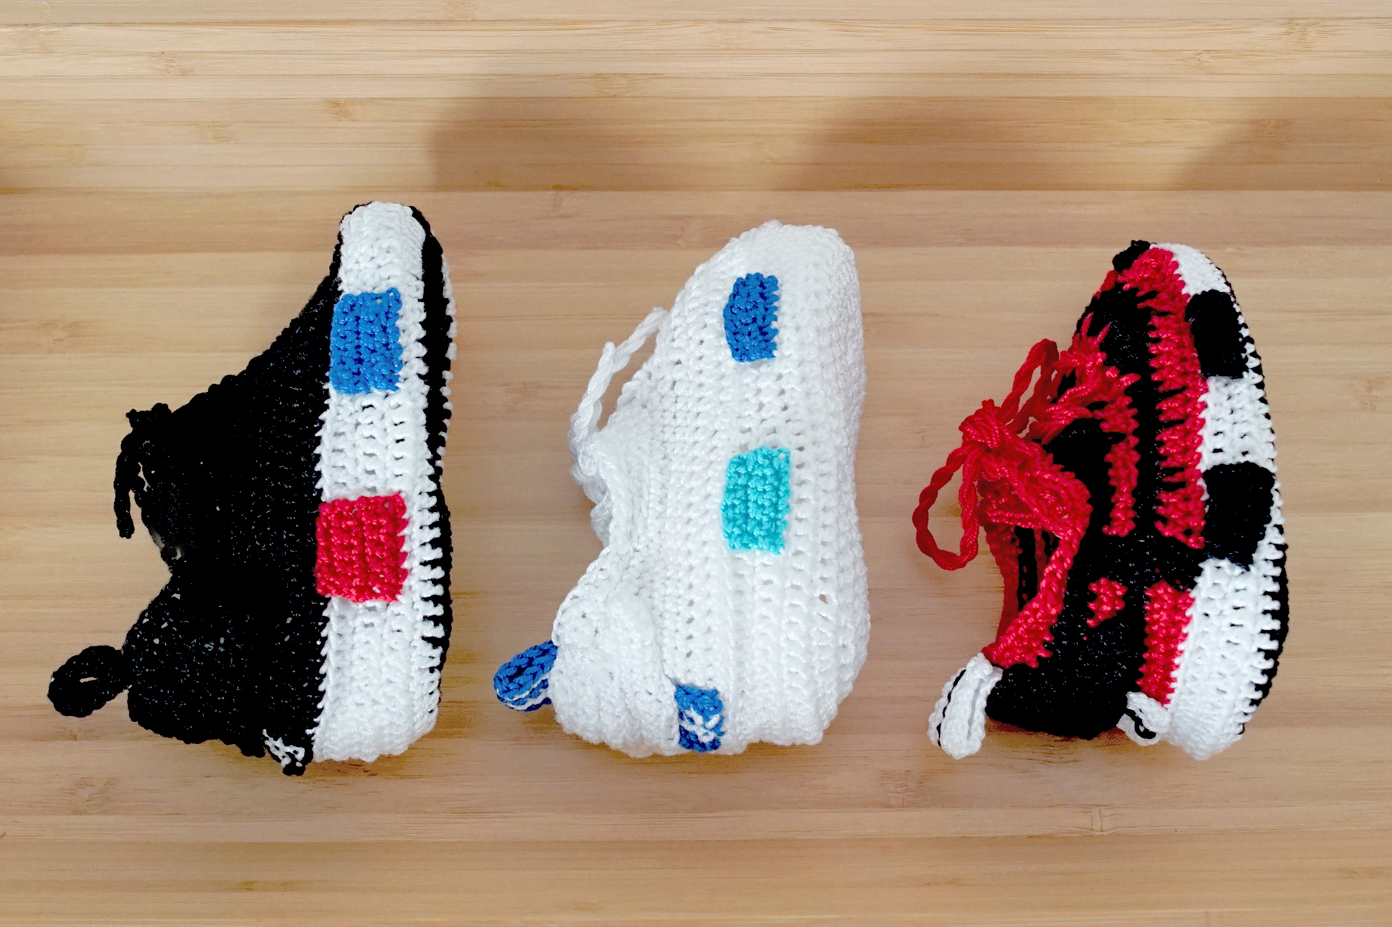 #hypebeastkids Picasso Babe Introduces Crochet adidas NMDs